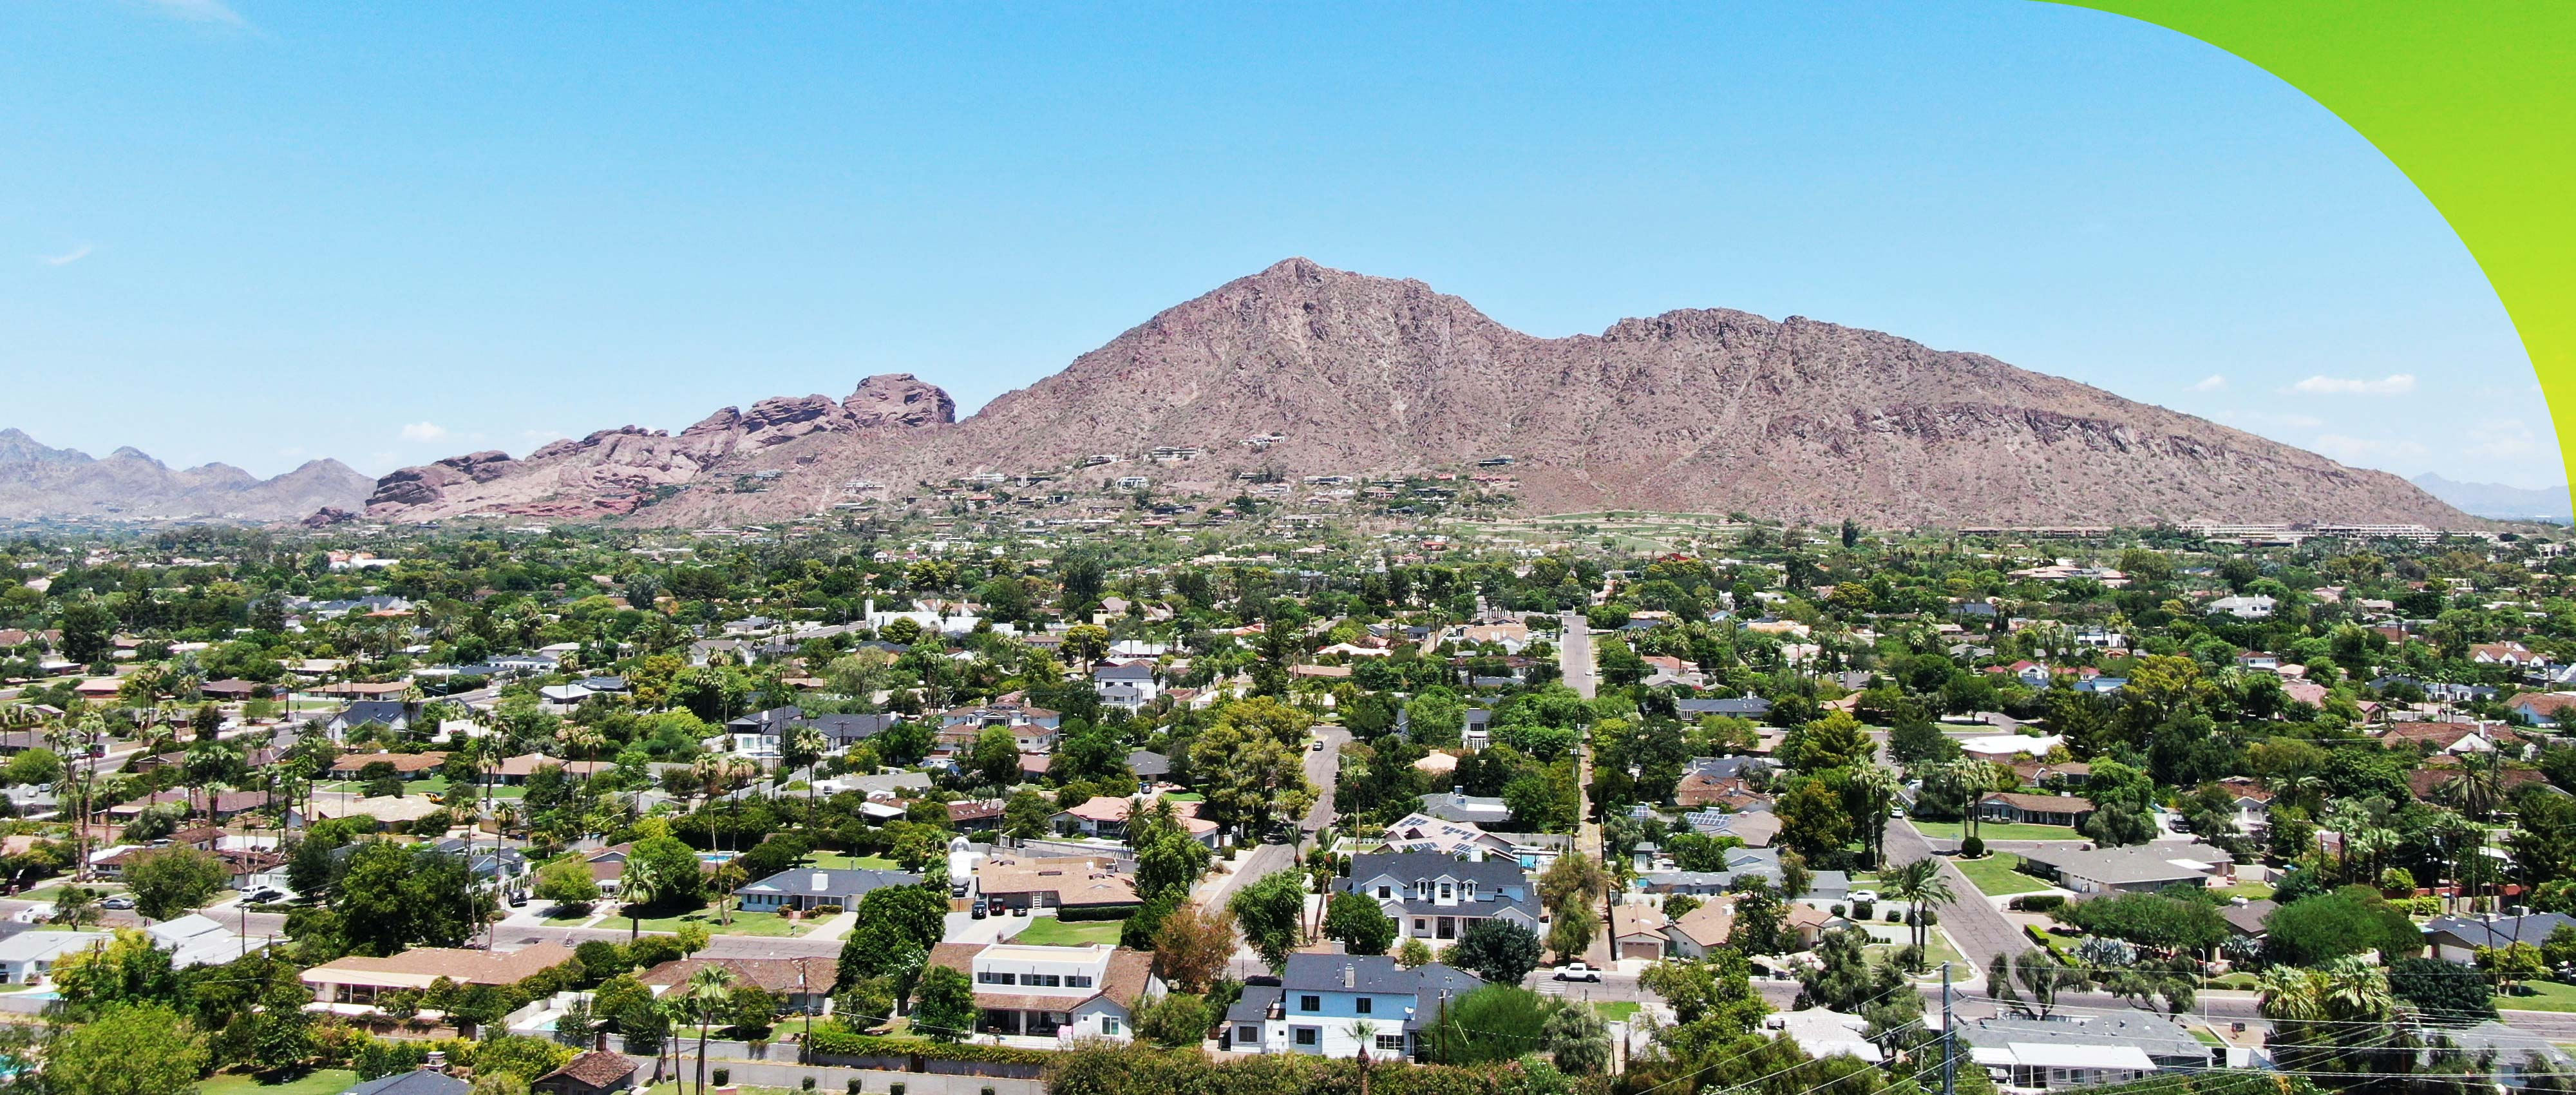 zoomed out shot of neighborhood in front of mountain range